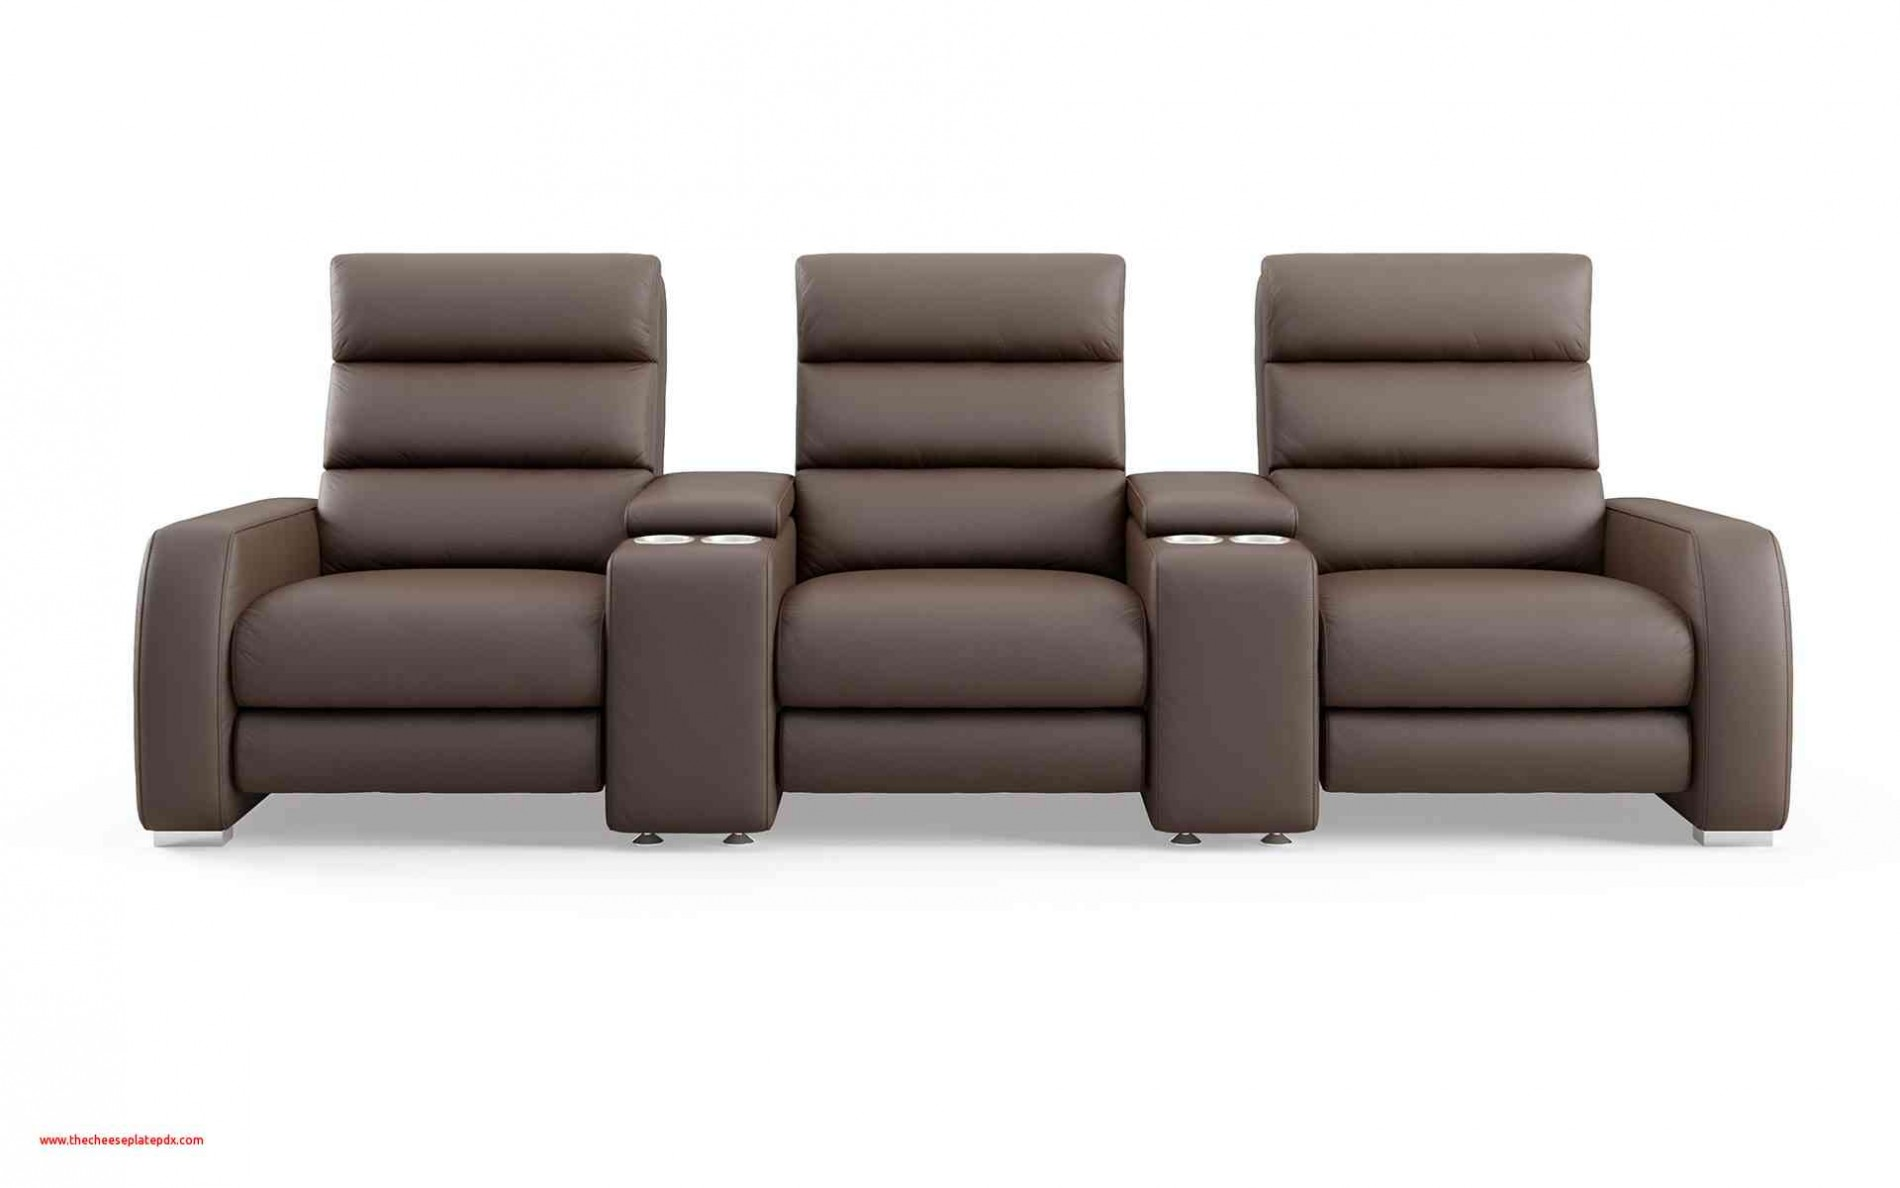 Ledercouch Beige Simple Schon Affordable Torino Sofa